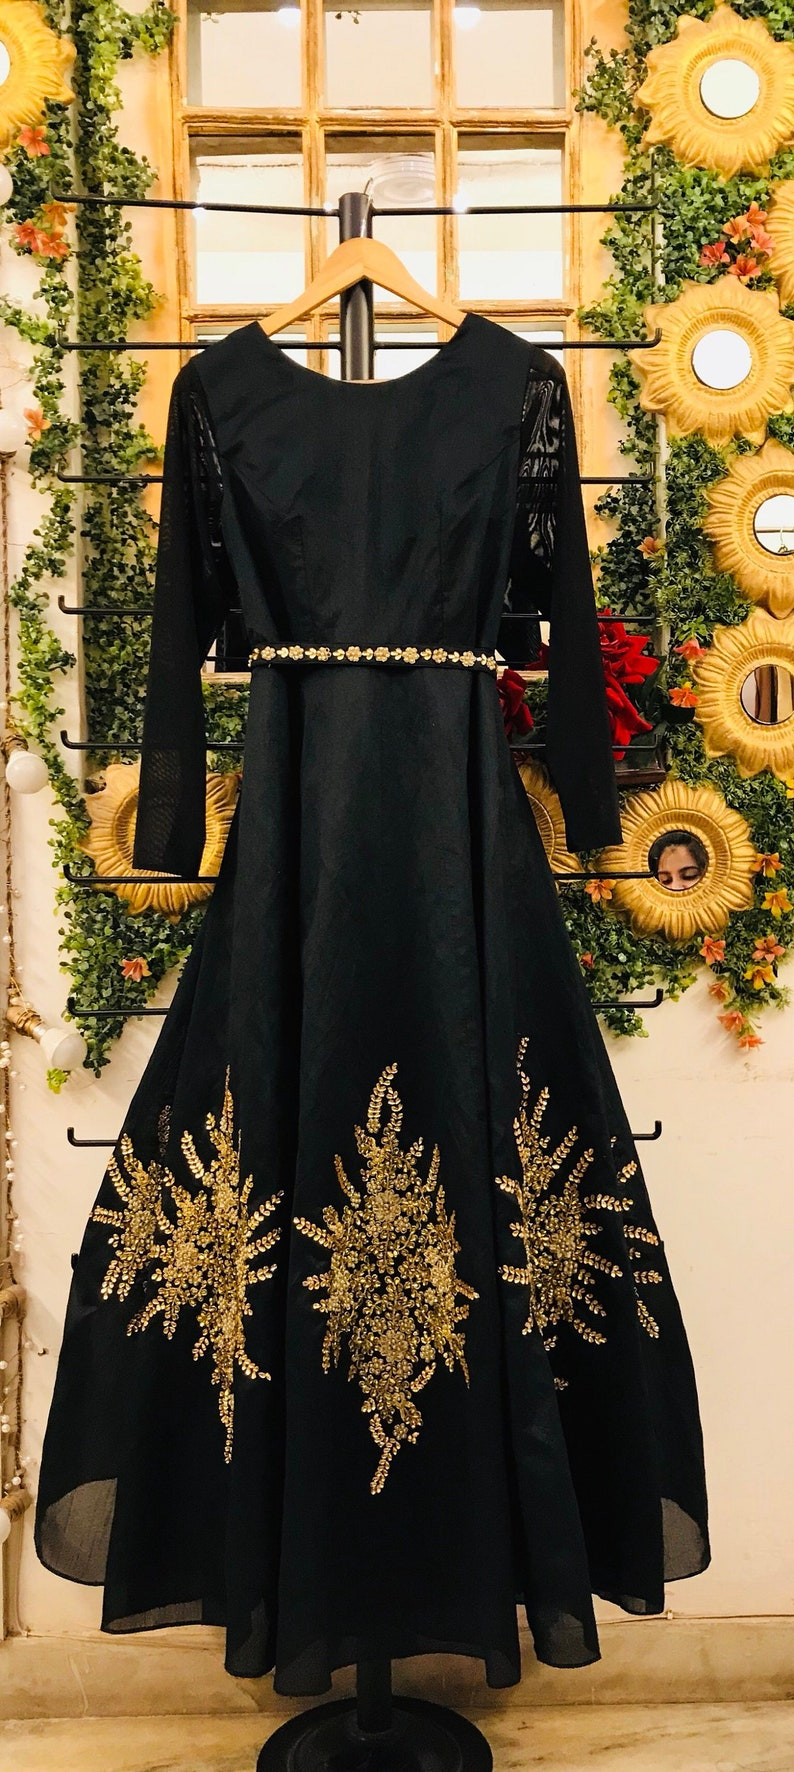 e96600e171c Black embroidered evening gown black ball gown engagement